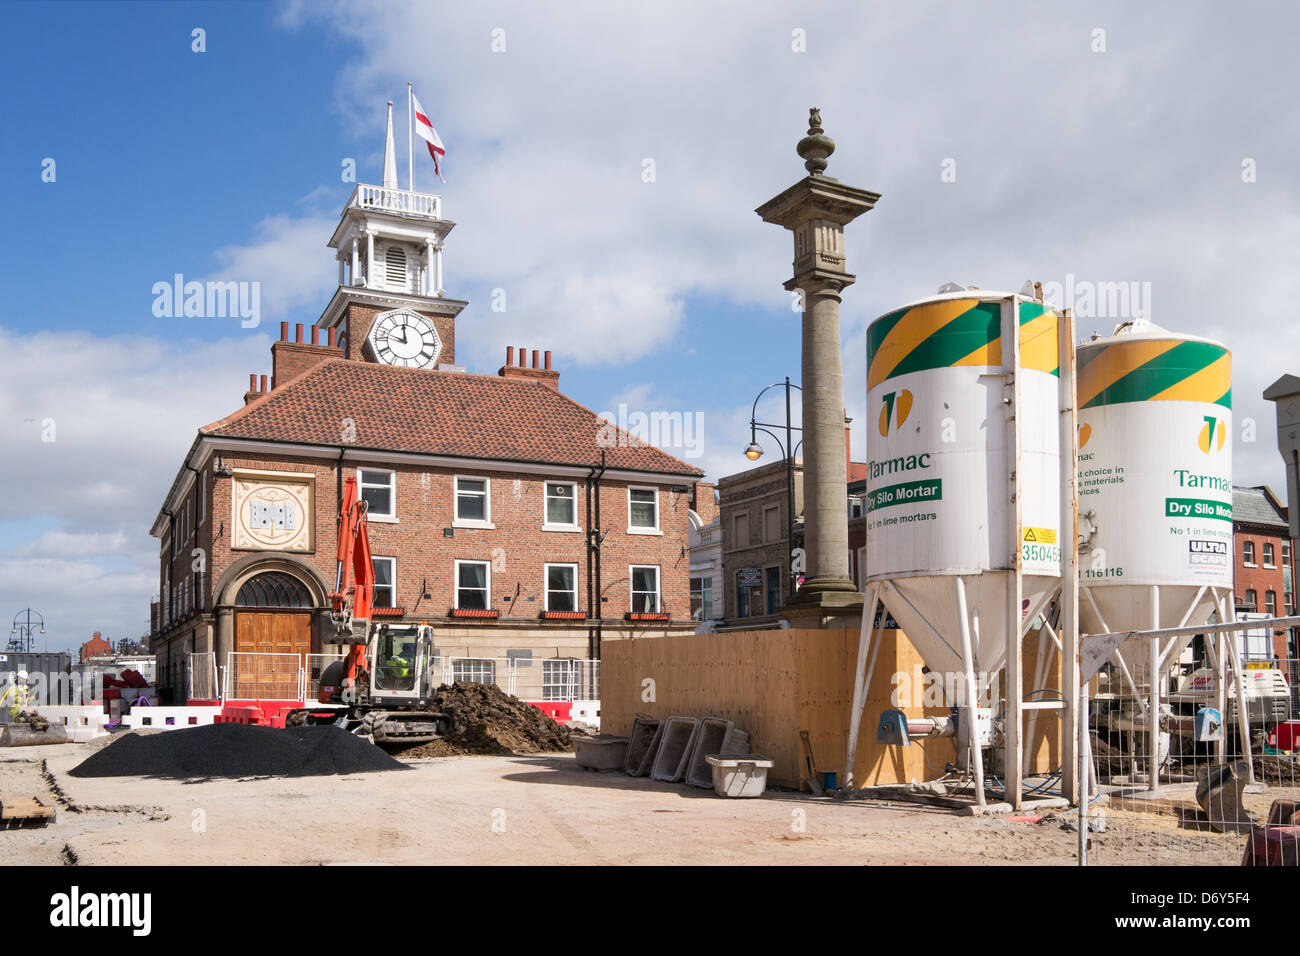 Construction work in progress in front of Stockton-on-Tees town  hall. - Stock Image